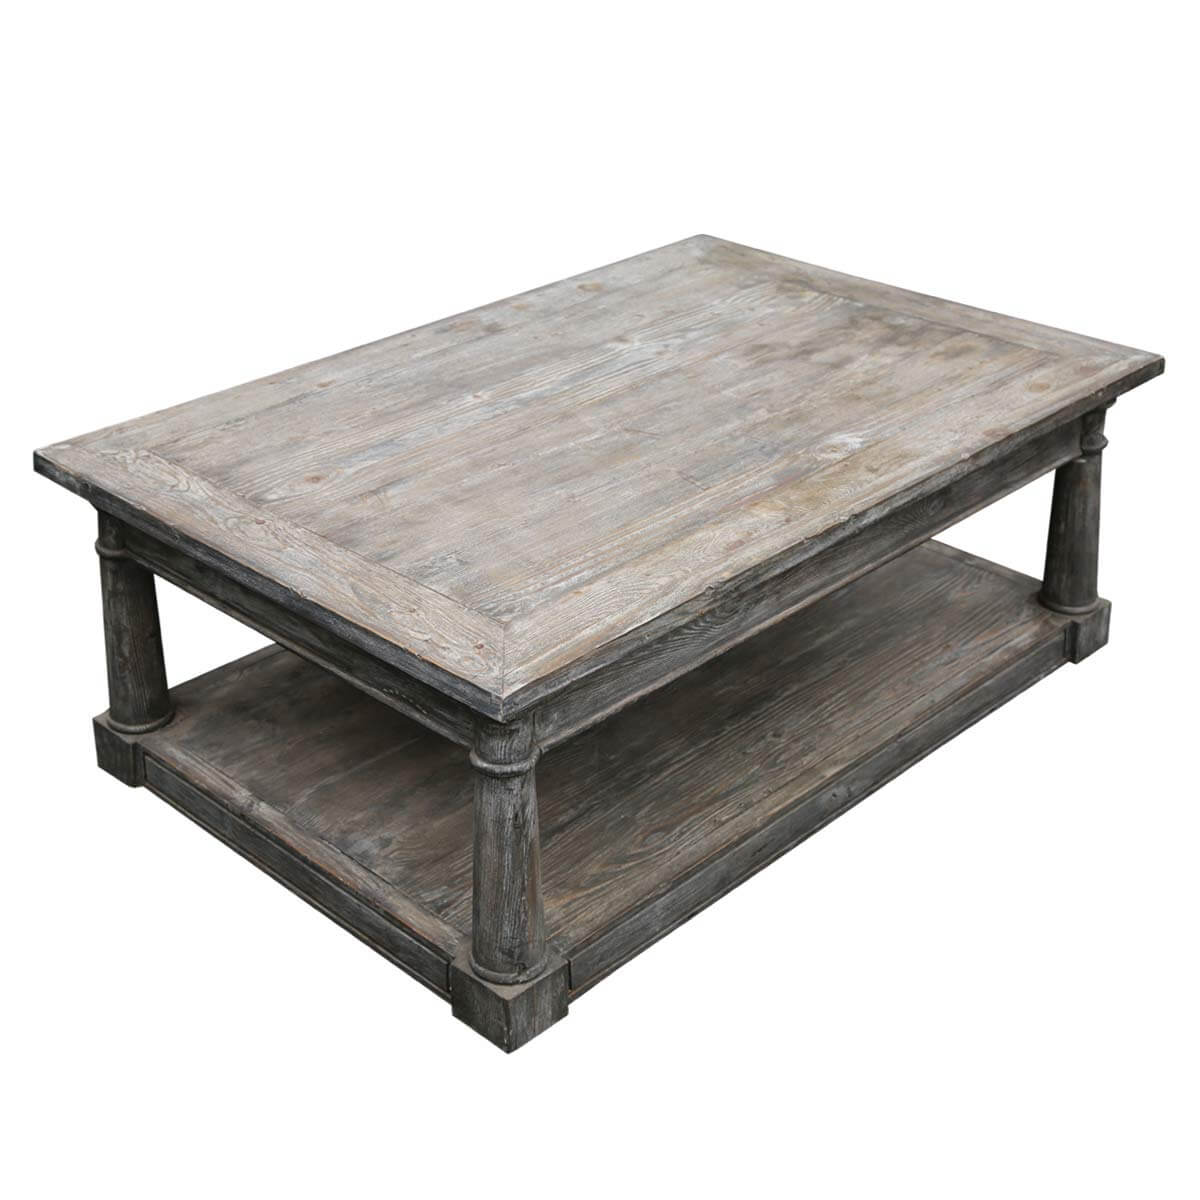 Shabby Chic Coffee Table Nz: Shabby Chic Rectangle Baluster Coffee Table Made Of Teak Wood